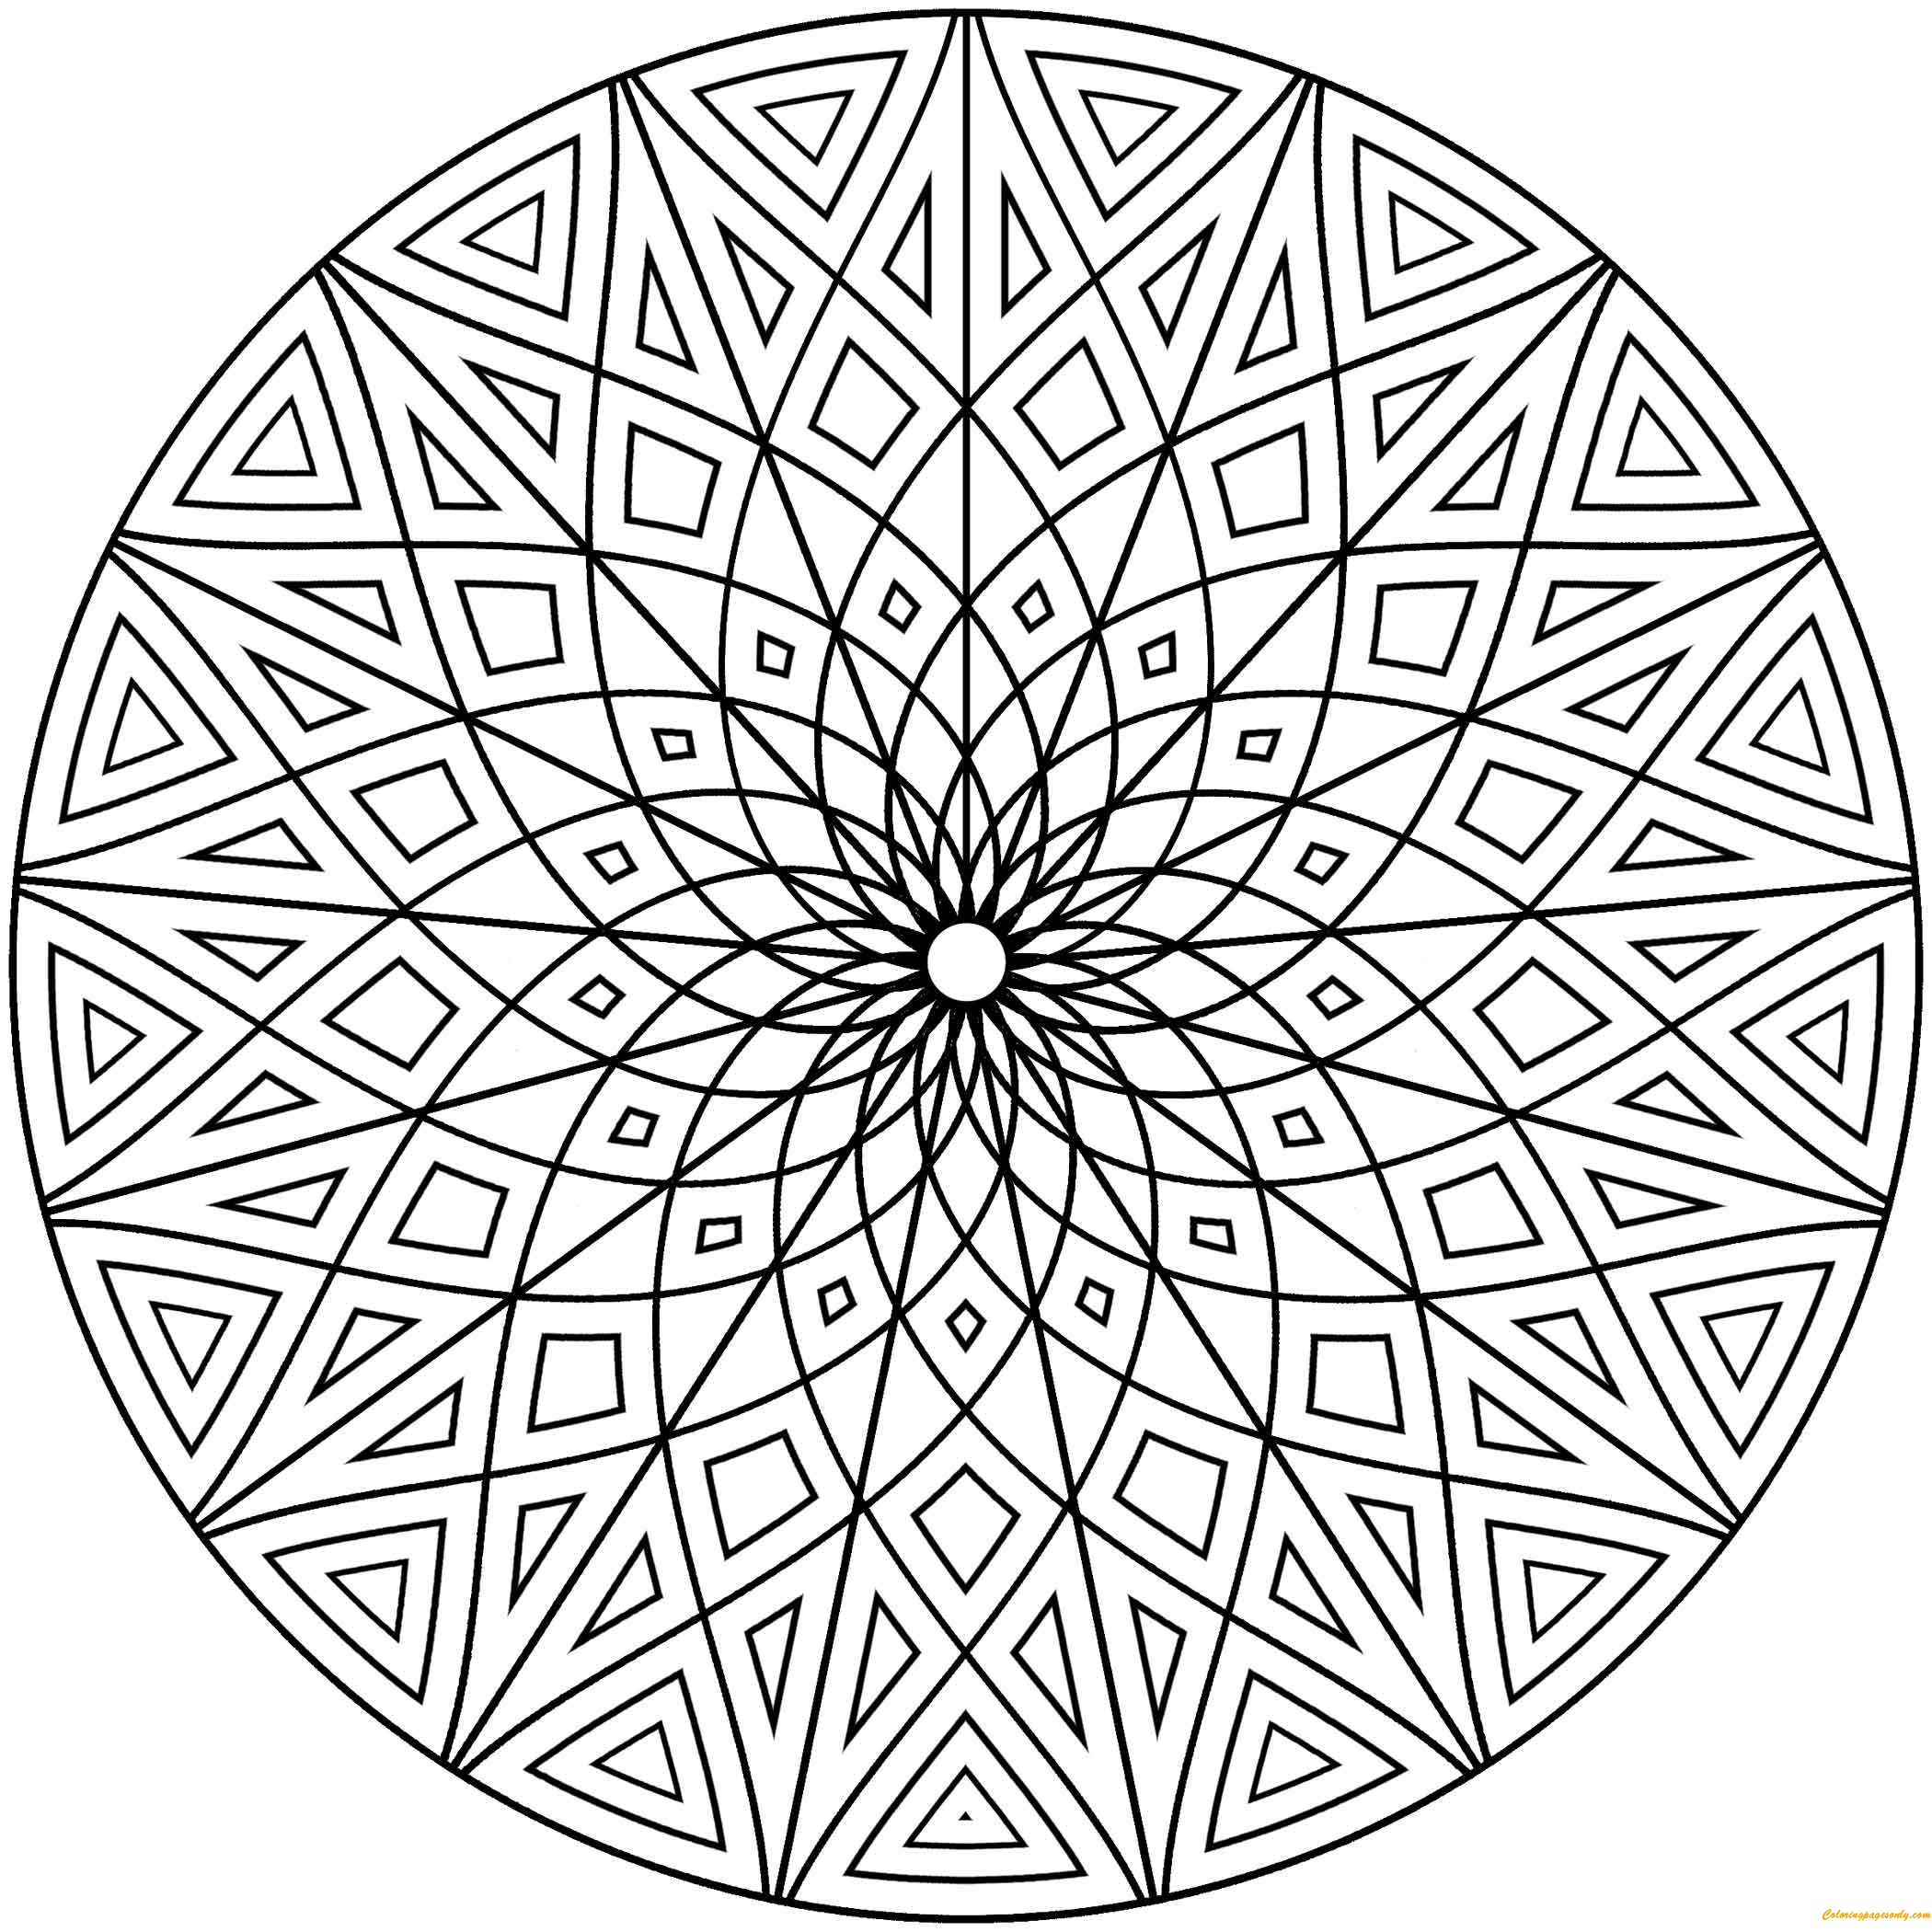 designs coloring pages hard geometric designs coloring page free coloring pages designs pages coloring